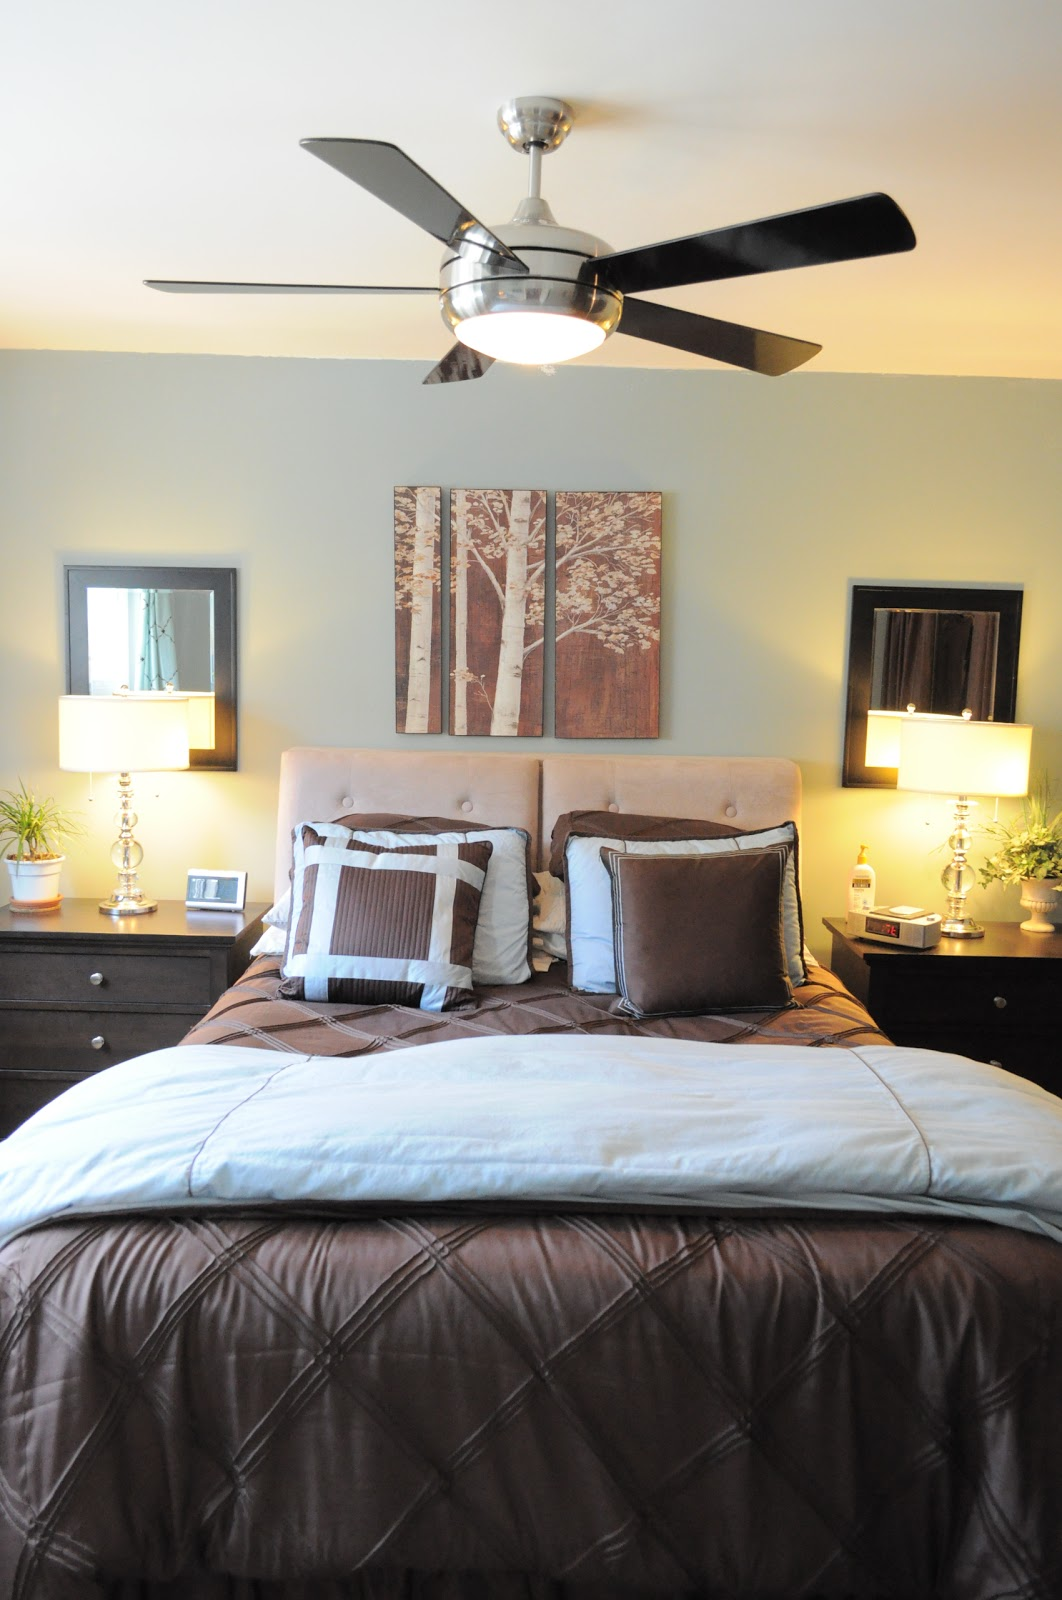 Our master bedroom tricks to make it feel bigger for Master bedroom images